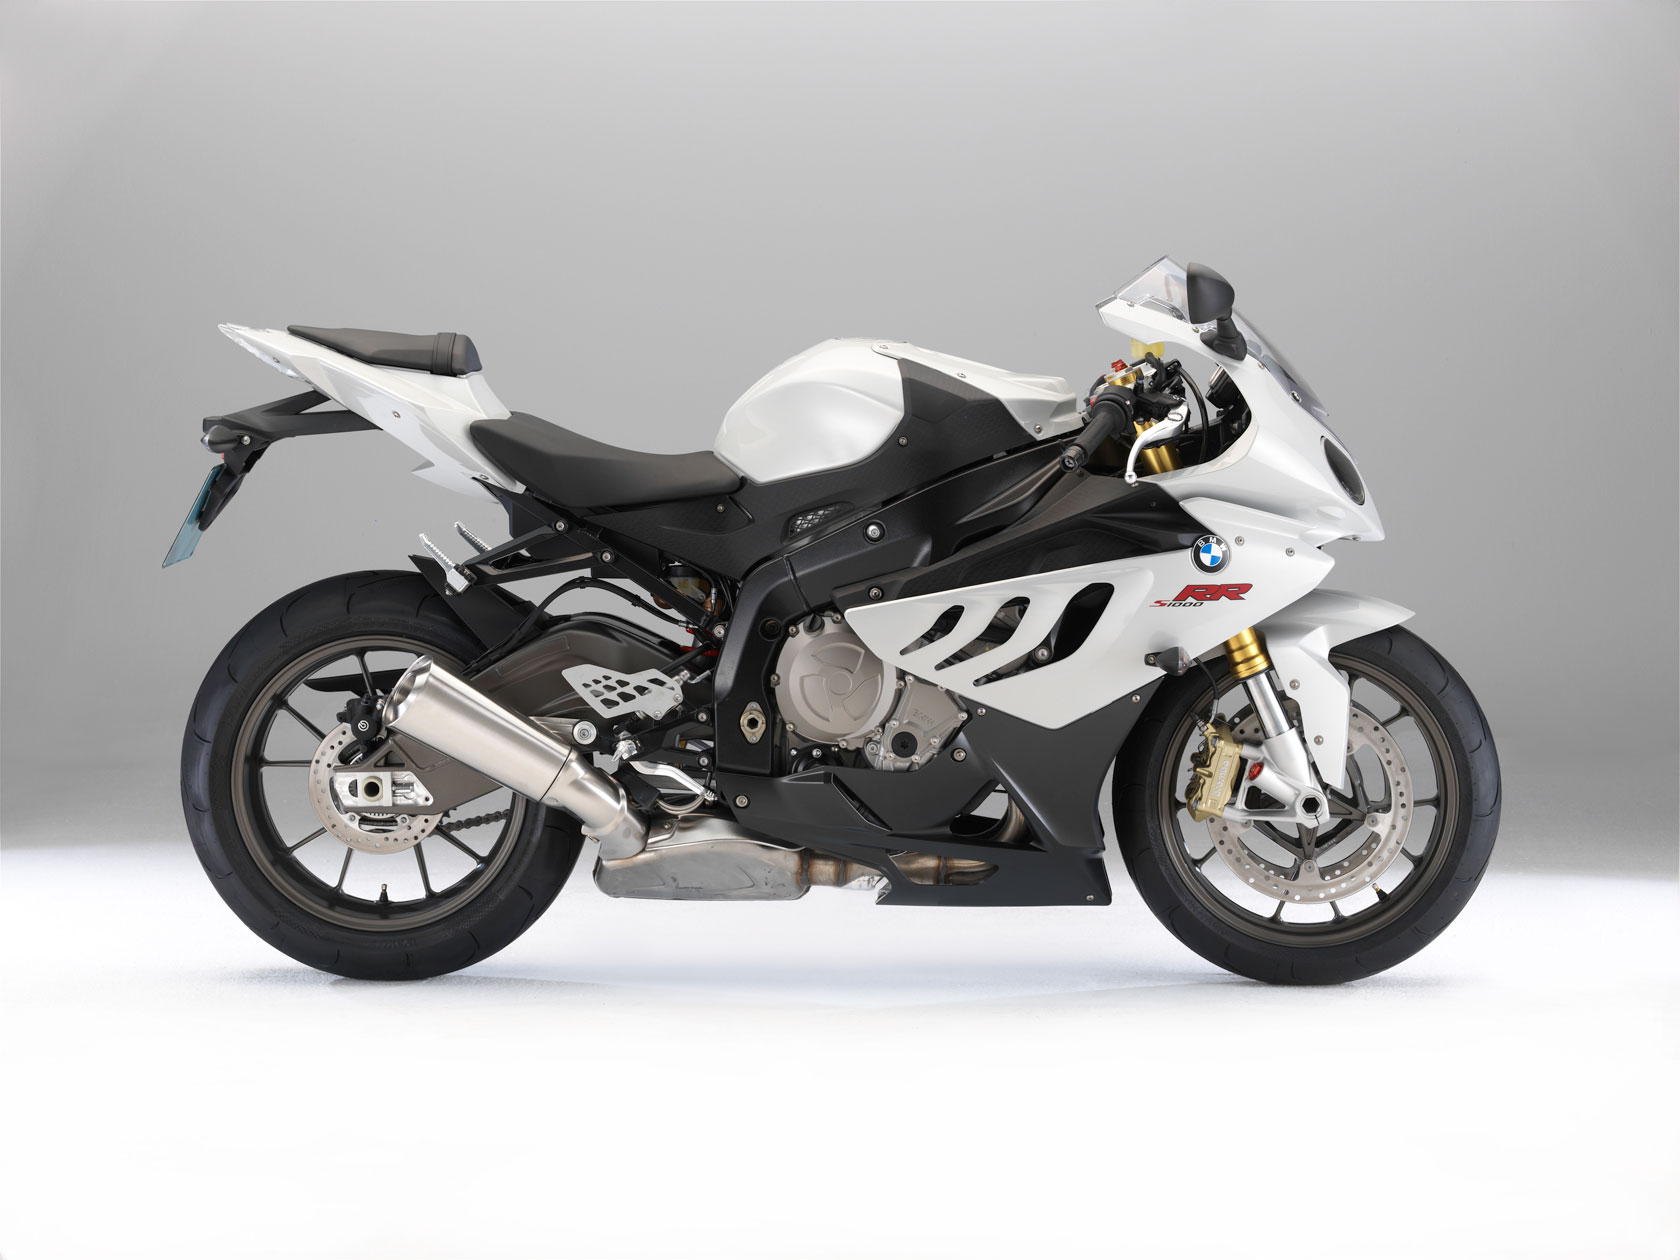 BMW S 1000 RR ABS images #8972